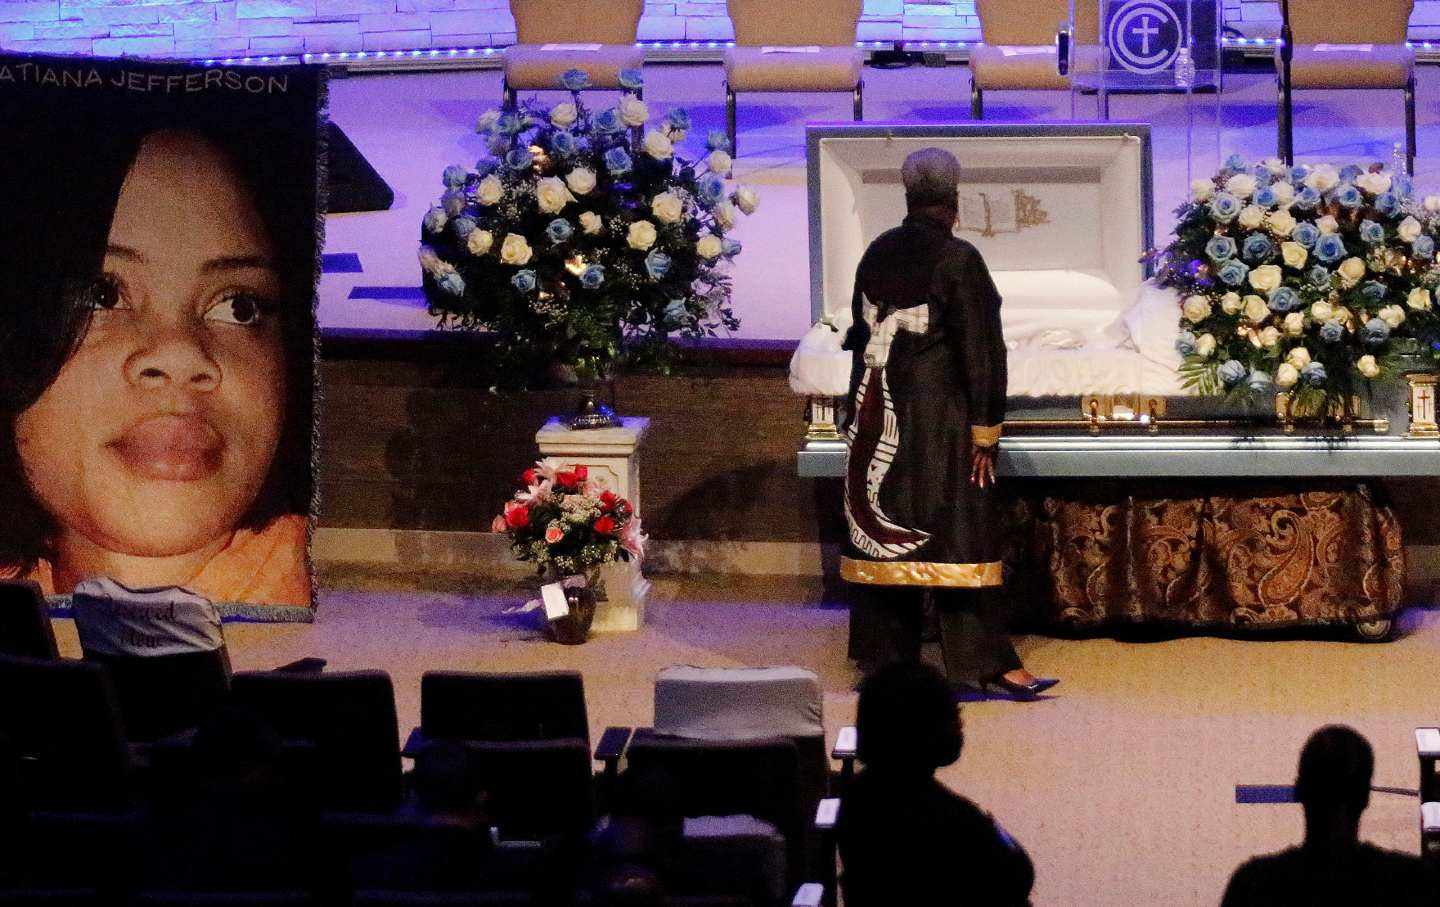 A woman dressed in black stands over Atatiana Jefferson's casket, while others wait behind her. A large photo of Jefferson is displayed to the left of the casket